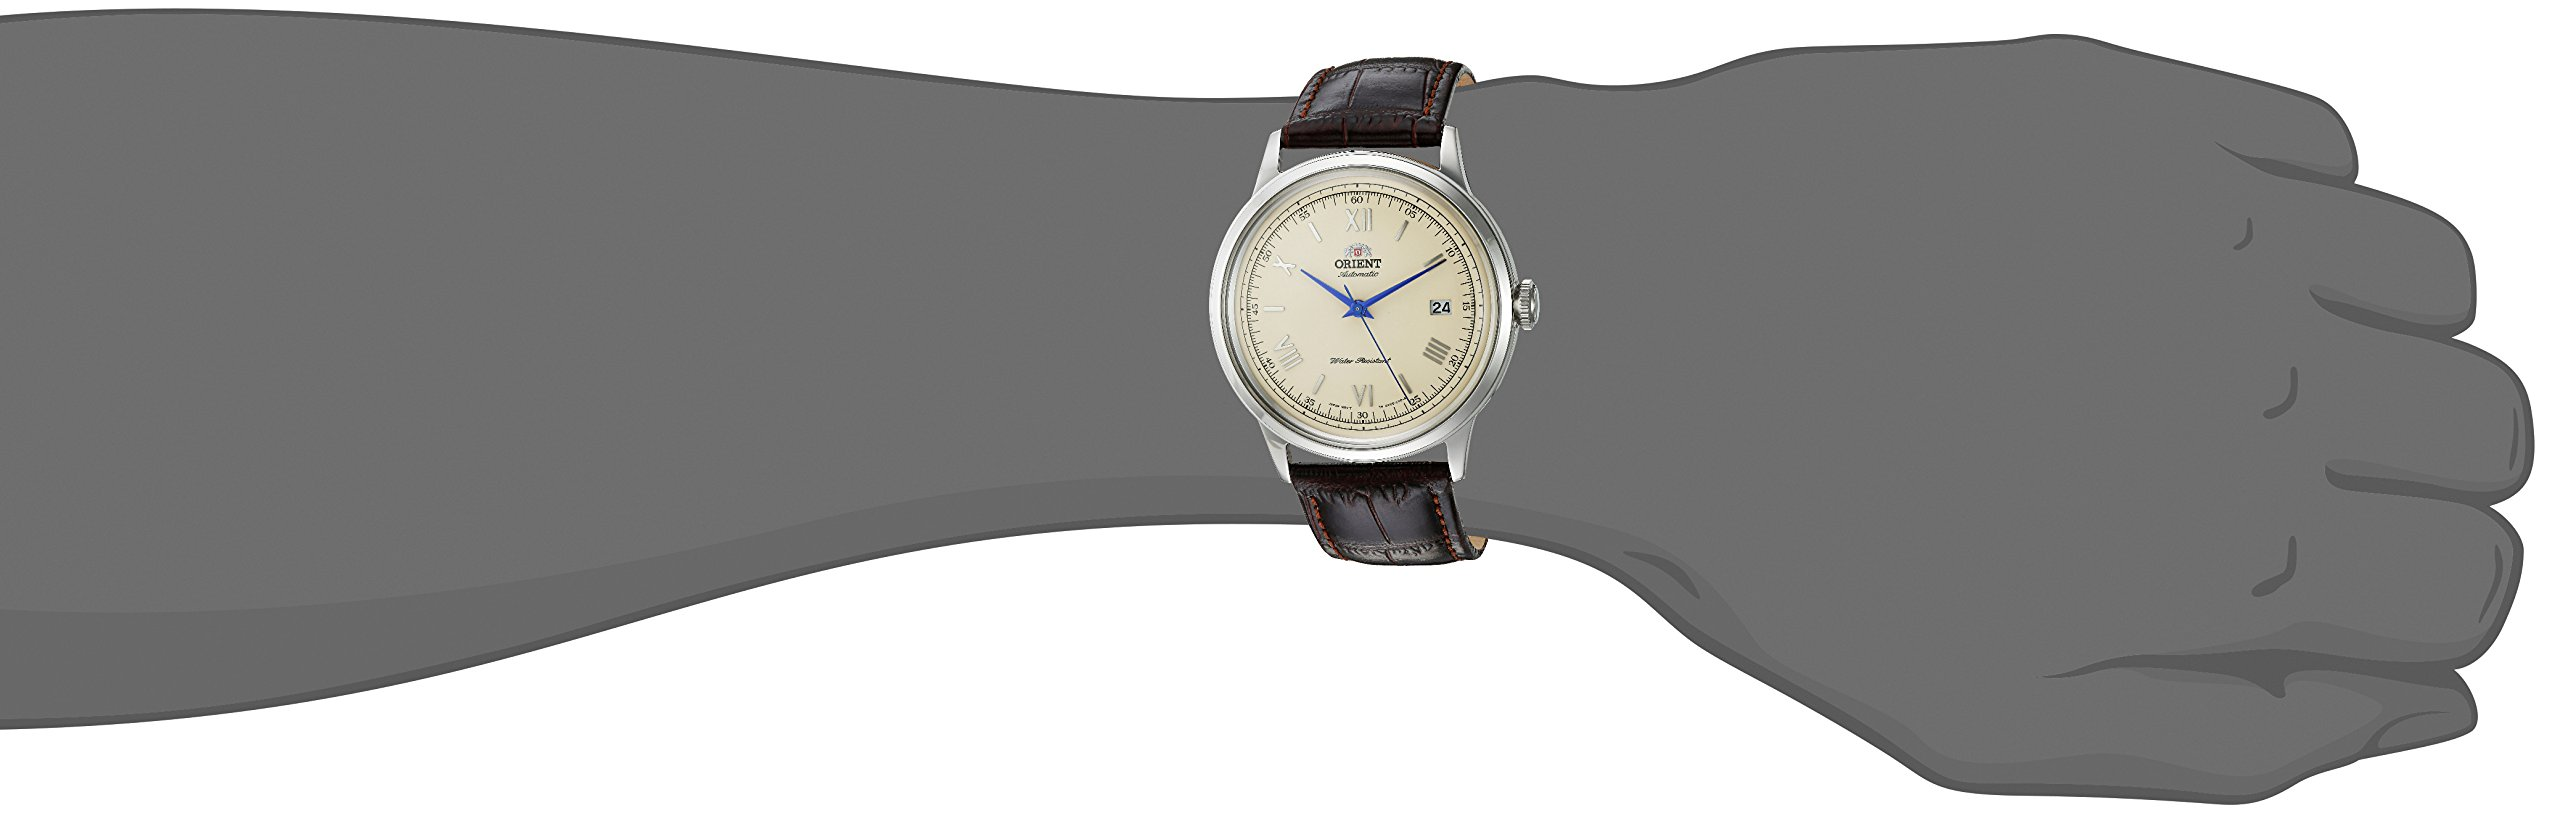 Orient Men's 2nd Gen. Bambino Ver. 2 Stainless Steel Japanese-Automatic Watch with Leather Strap, Brown, 21 (Model: FAC00009N0) by ORIENT (Image #2)